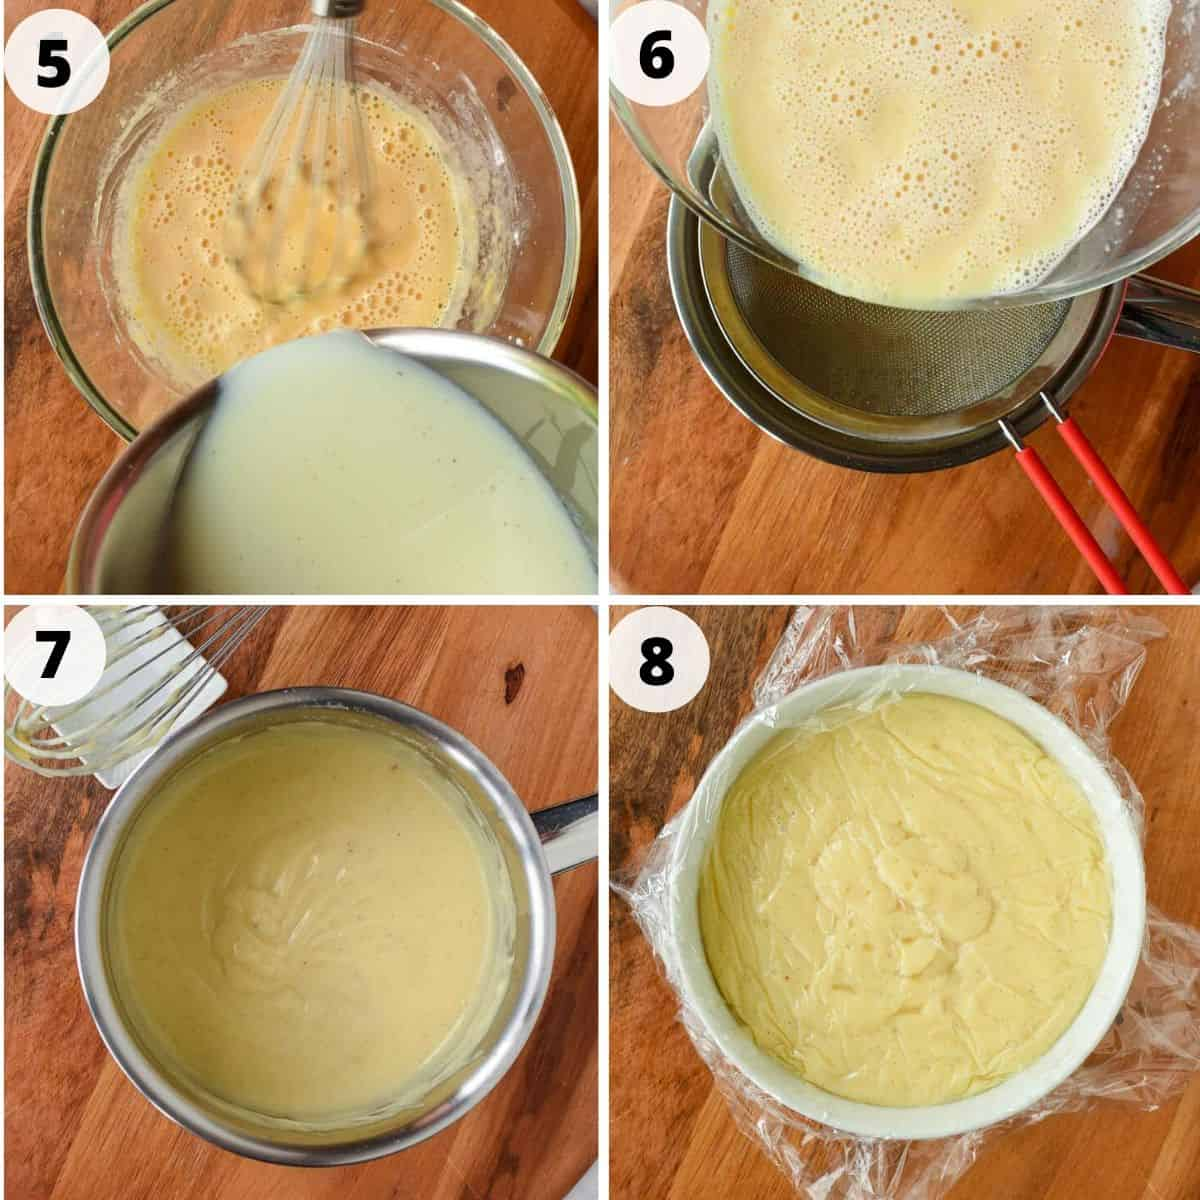 four images. Image 1 - glass bowl of yellow custard mixture with milk being poured in. image 2 - yellow custard mixture being pour through sieve into saucepan. image 3 - thickened pastry cream in saucepan. image 4 - pastry cream in white bowl covered with plastic wrap.